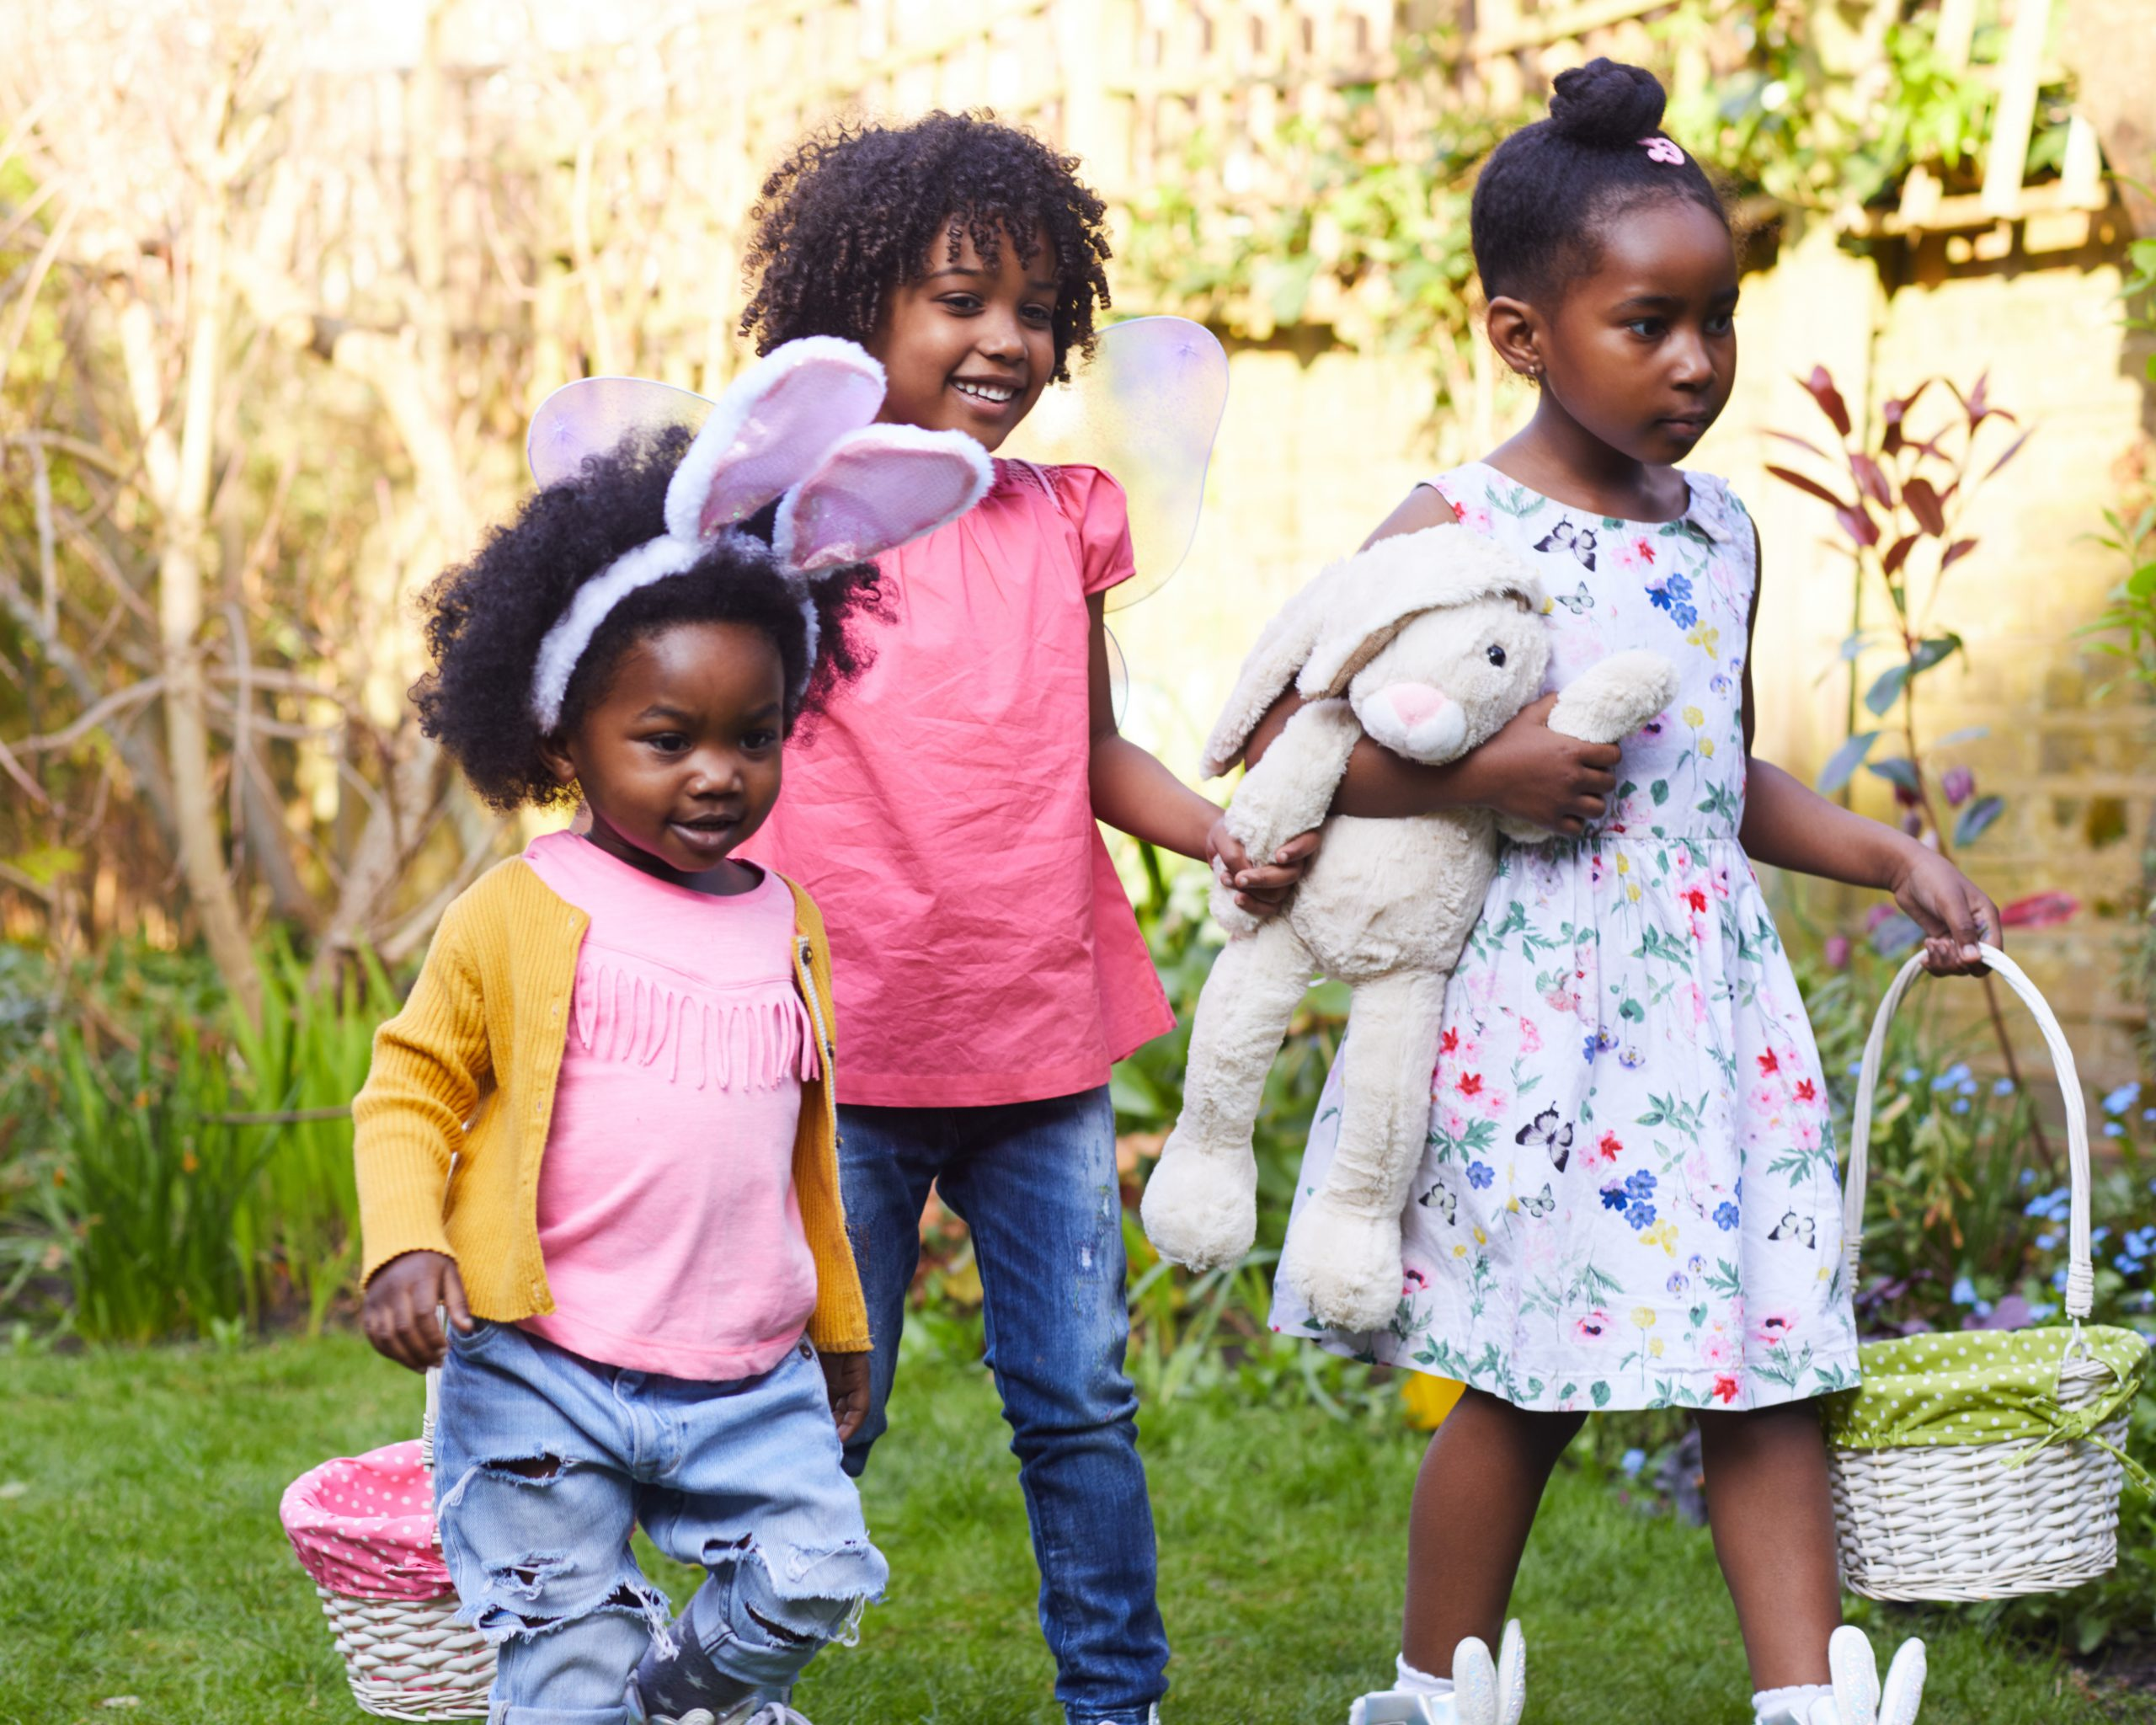 Children taking part in Easter activities and games for kids outside in the garden.